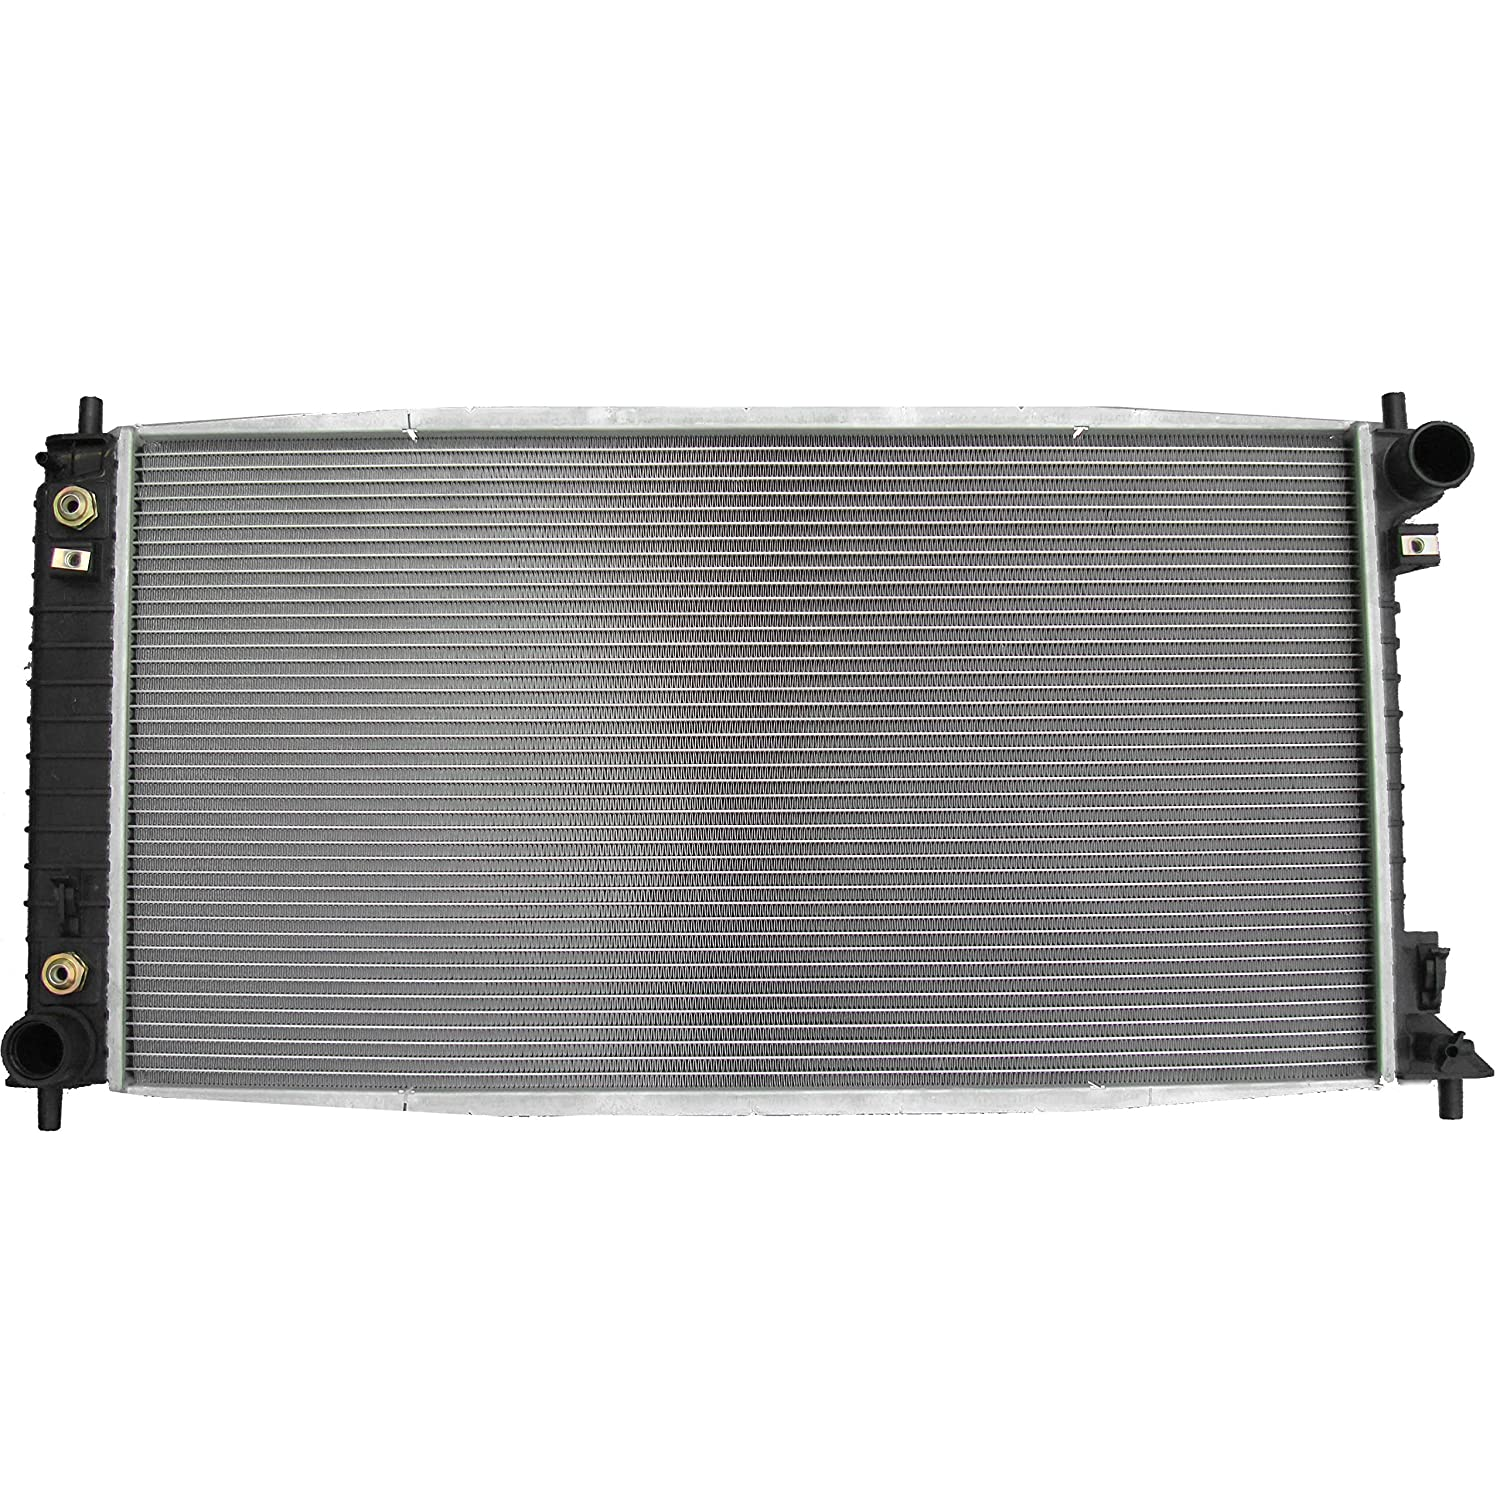 Spectra Premium CU2819 Complete Radiator for Ford F Series